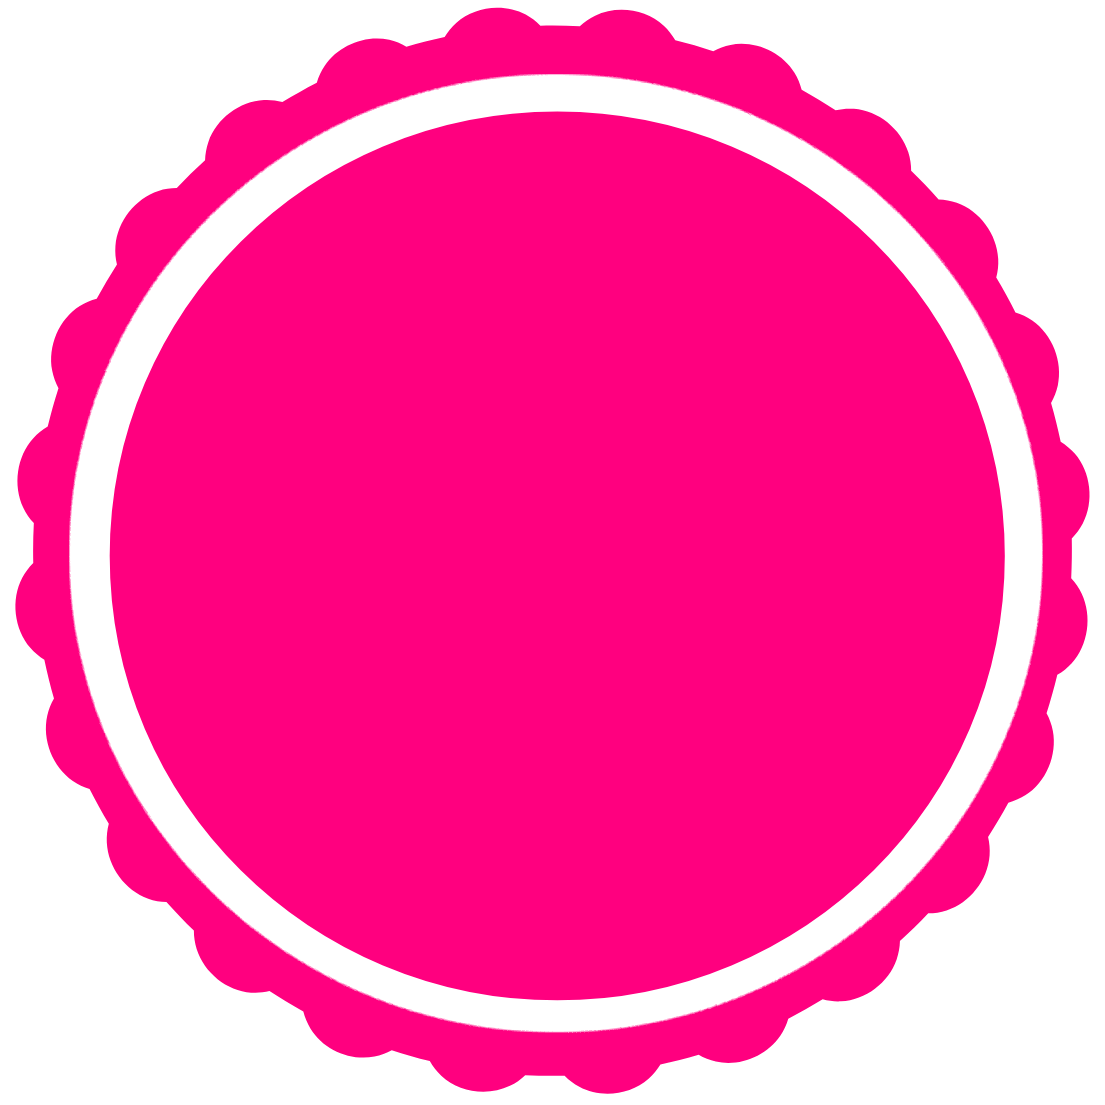 collection of high. Circle clipart pink